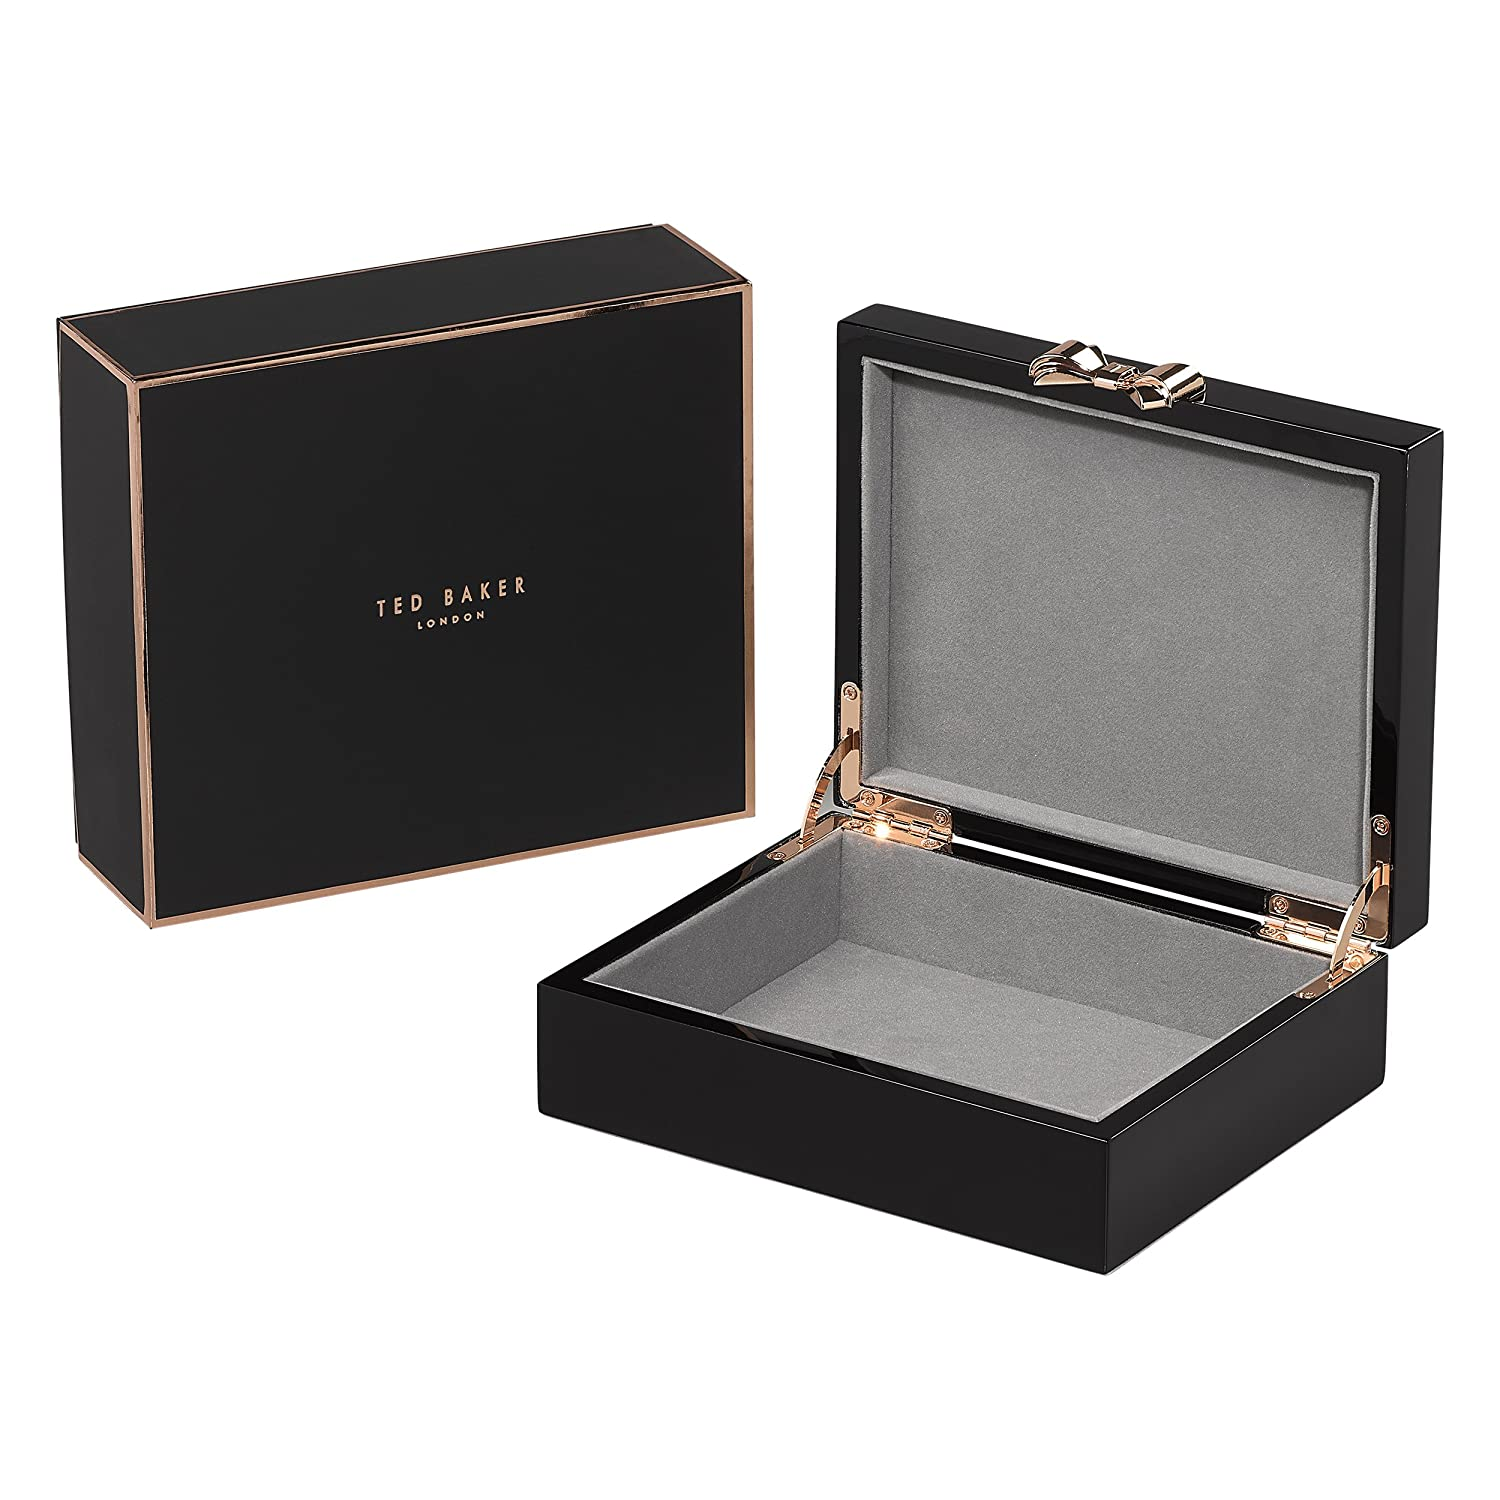 e9cdd9ed7 Amazon.com: Ted Baker Black Lacquered Jewelry Box- Medium - Wild and Wolf:  Beauty